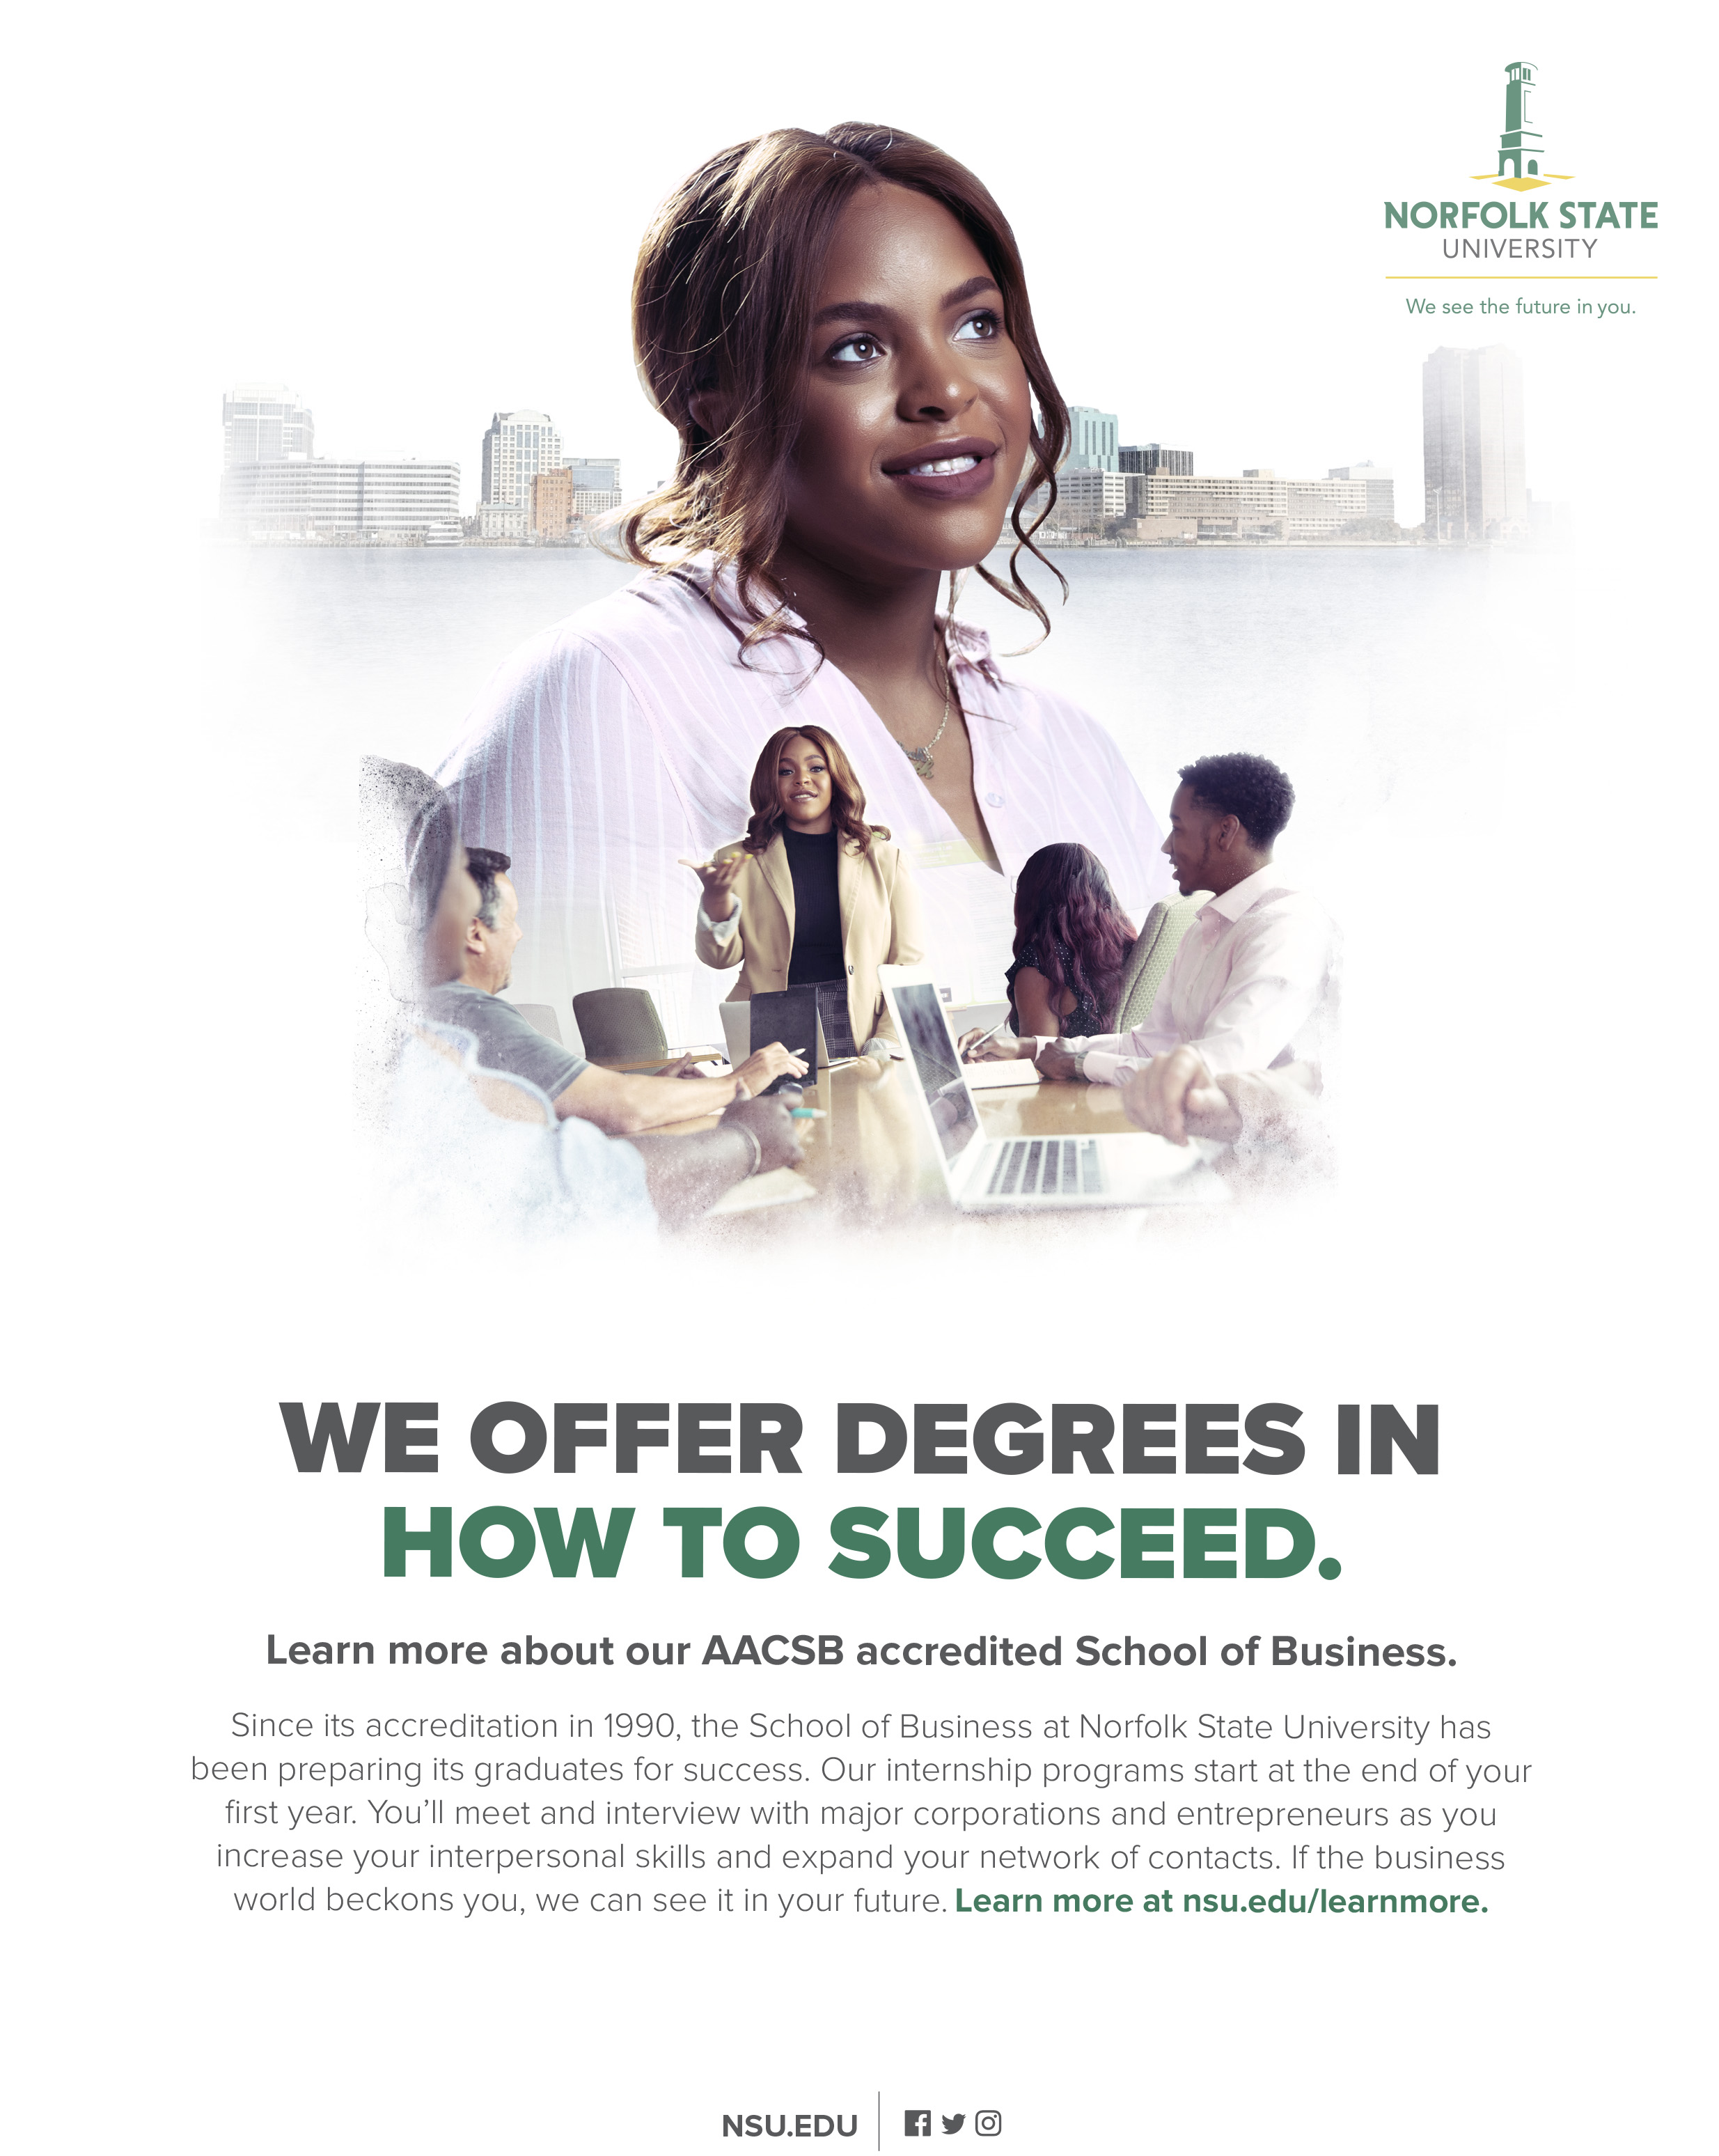 We offer degrees in how to succeed. Learn more about our AACSB accredited School of Business.Since its accreditation in 1990, the School of Business at Norfolk State University has been preparing its graduates for success. Our internship programs start at the end of your first year. You'll meet and interview with major corporations and entrepreneurs as you increase your interpersonal skills and expand your network of contacts. If the business world beckons you, we can see it in your future. Learn more at nsu.edu/learnmore